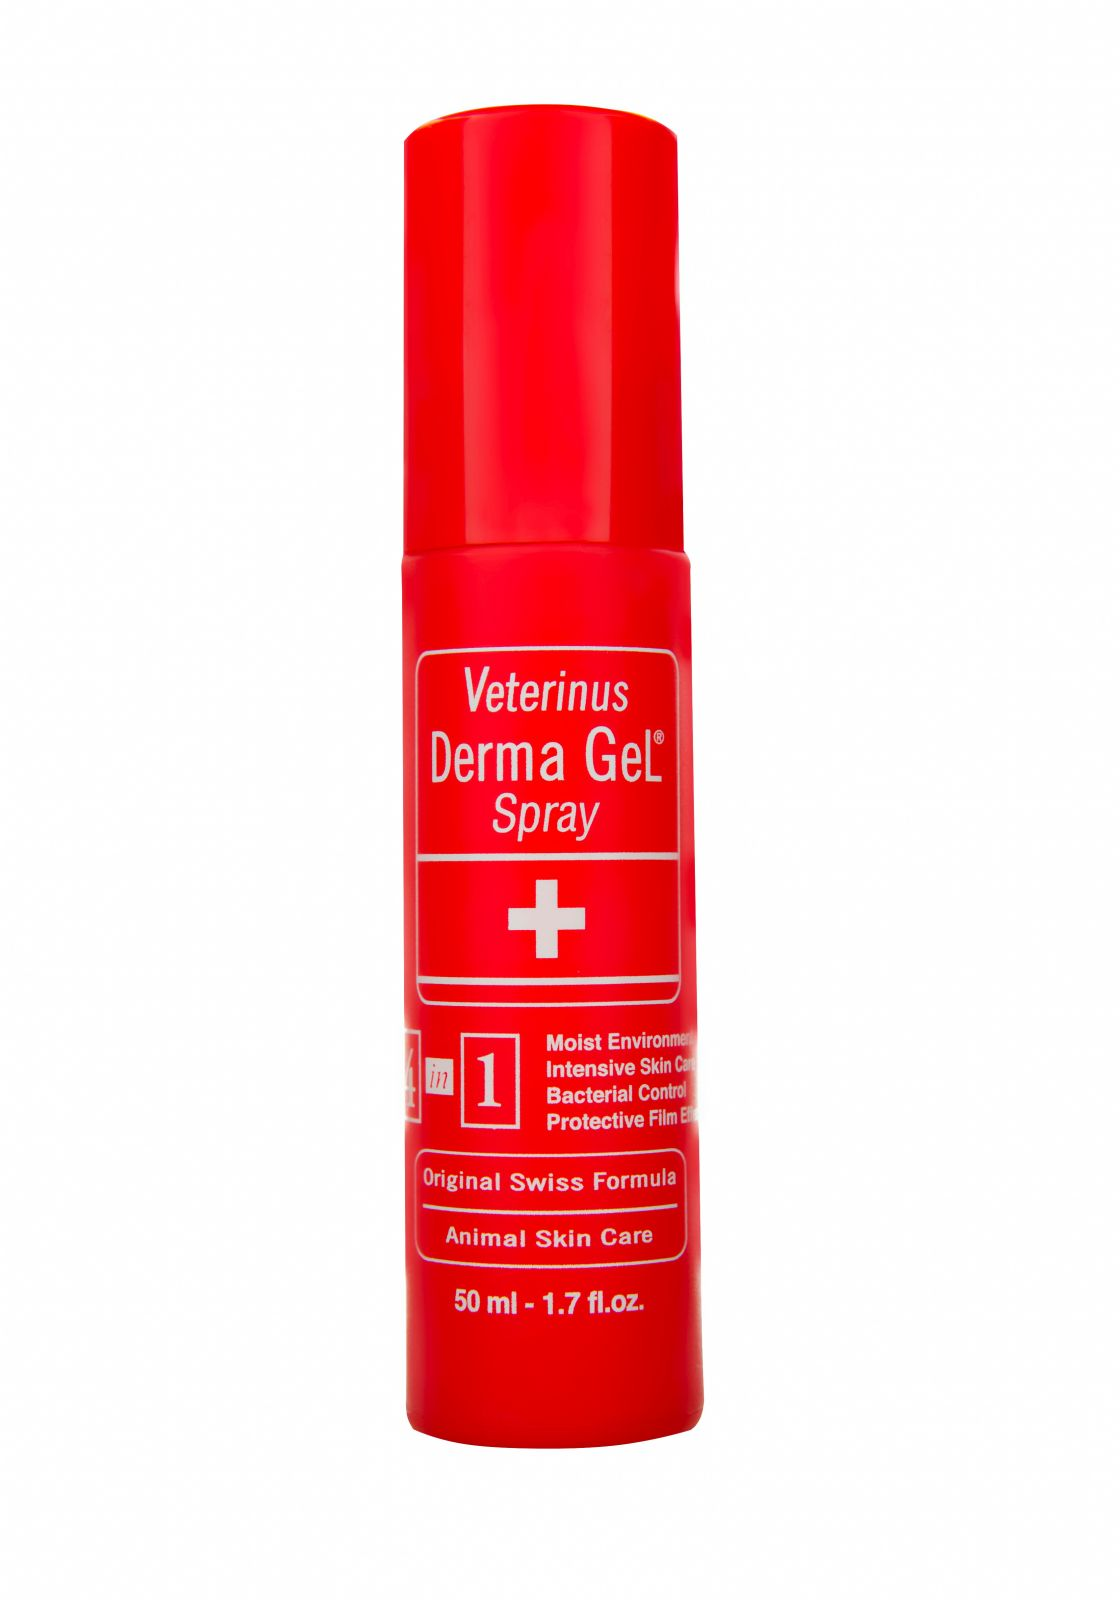 DERMA GEL SPRAY